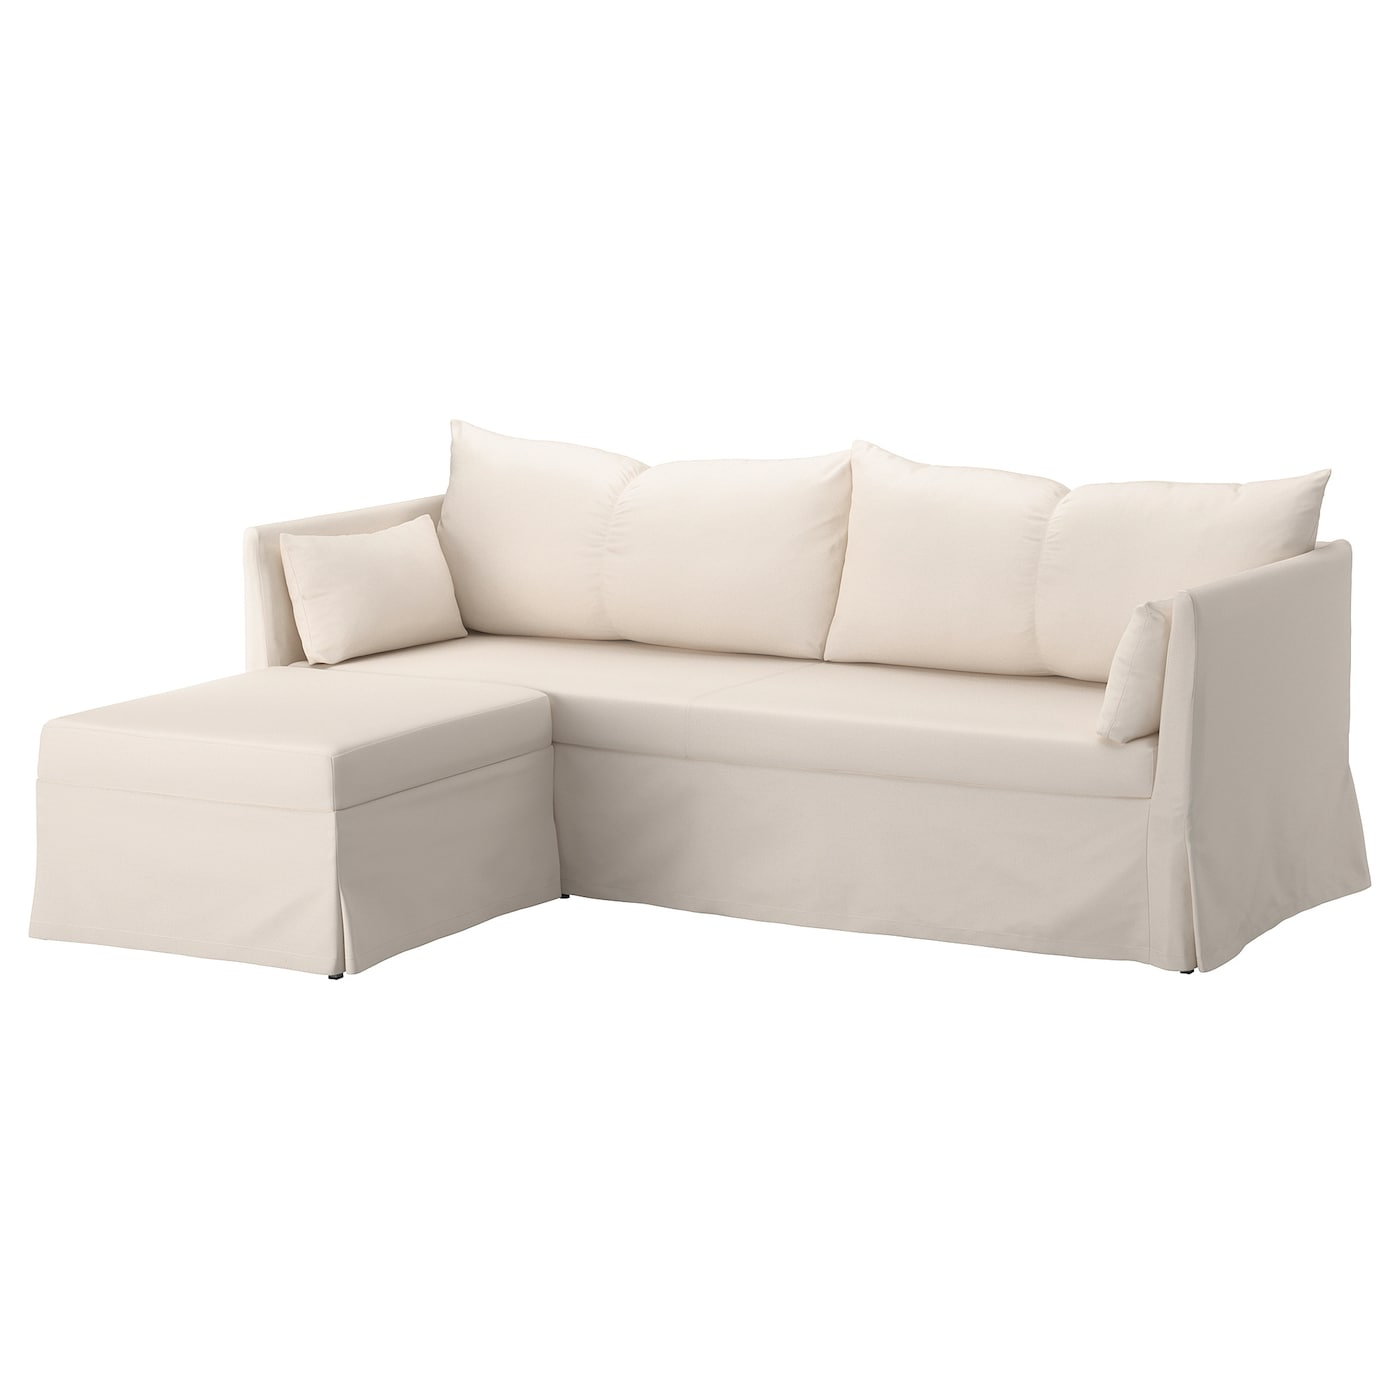 Ikea Bettsofa bett sofa bettsofa matratze with bett sofa bett sofa with bett sofa stunning er sofa with